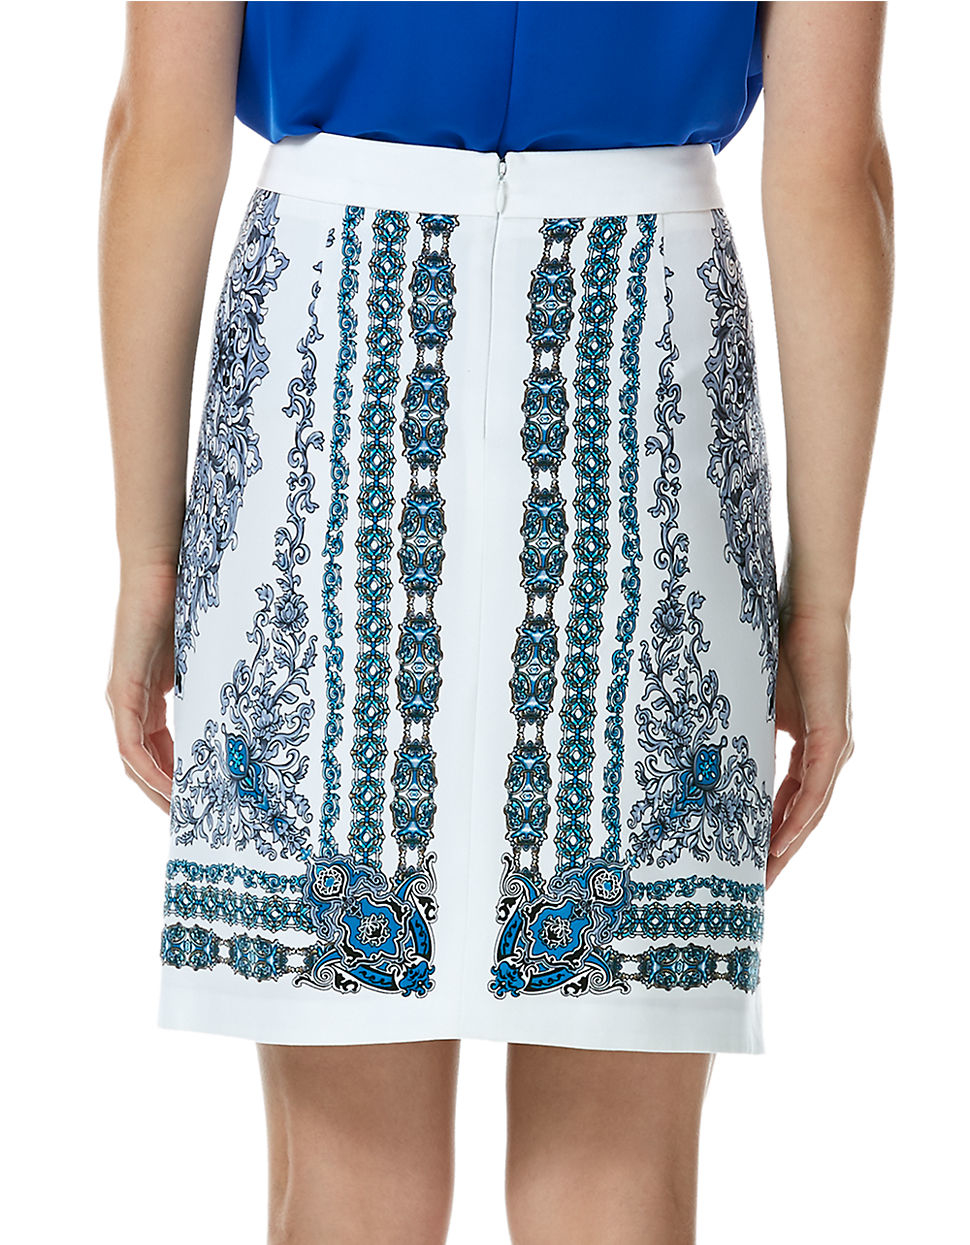 laundry by shelli segal patterned pencil skirt in